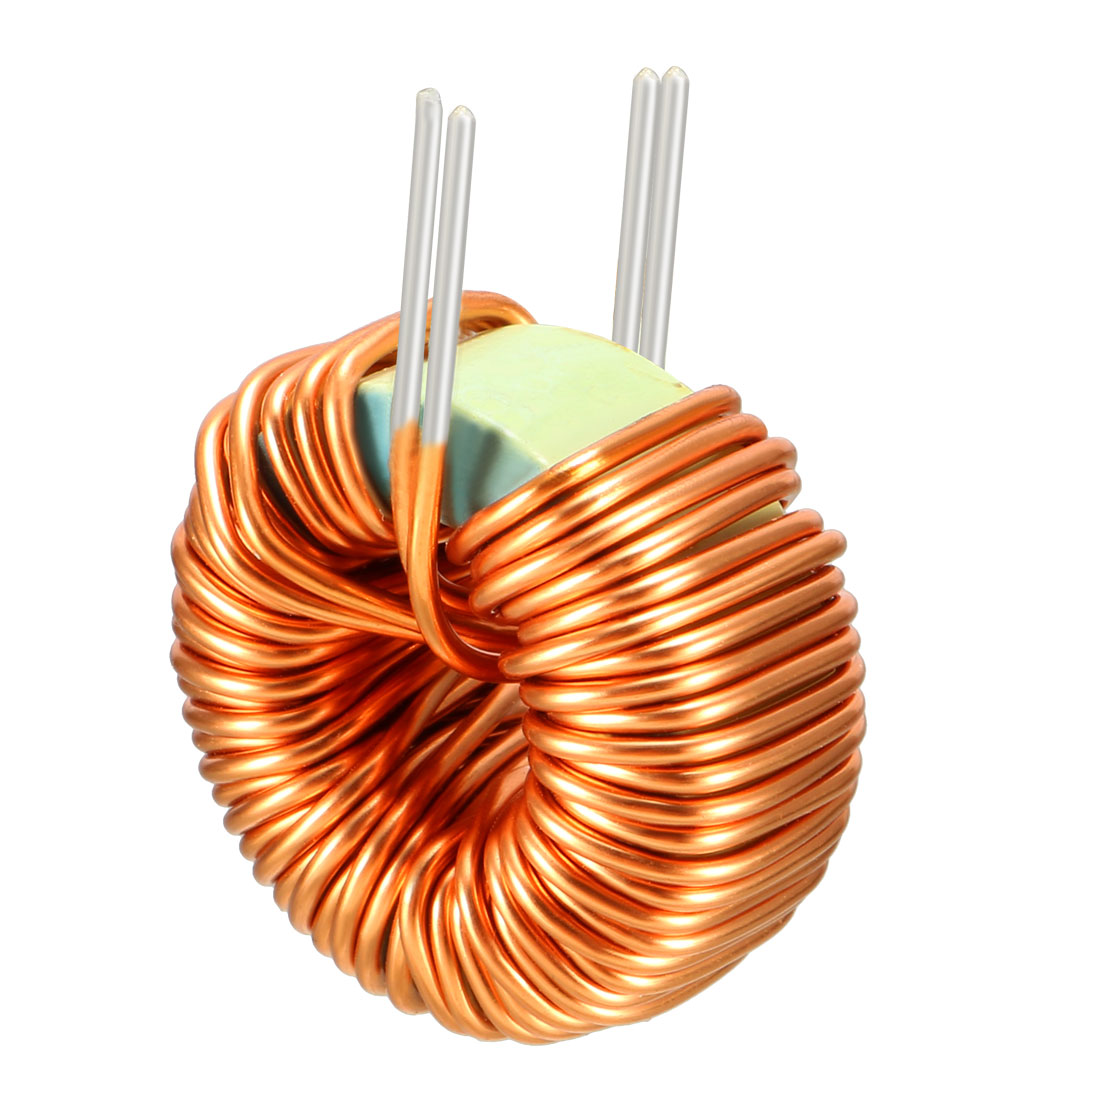 Uxcell Toroid Magnetic Inductor Monolayer Wire Wind Wound 10mH 3A Inductance Coil, High Current Capability